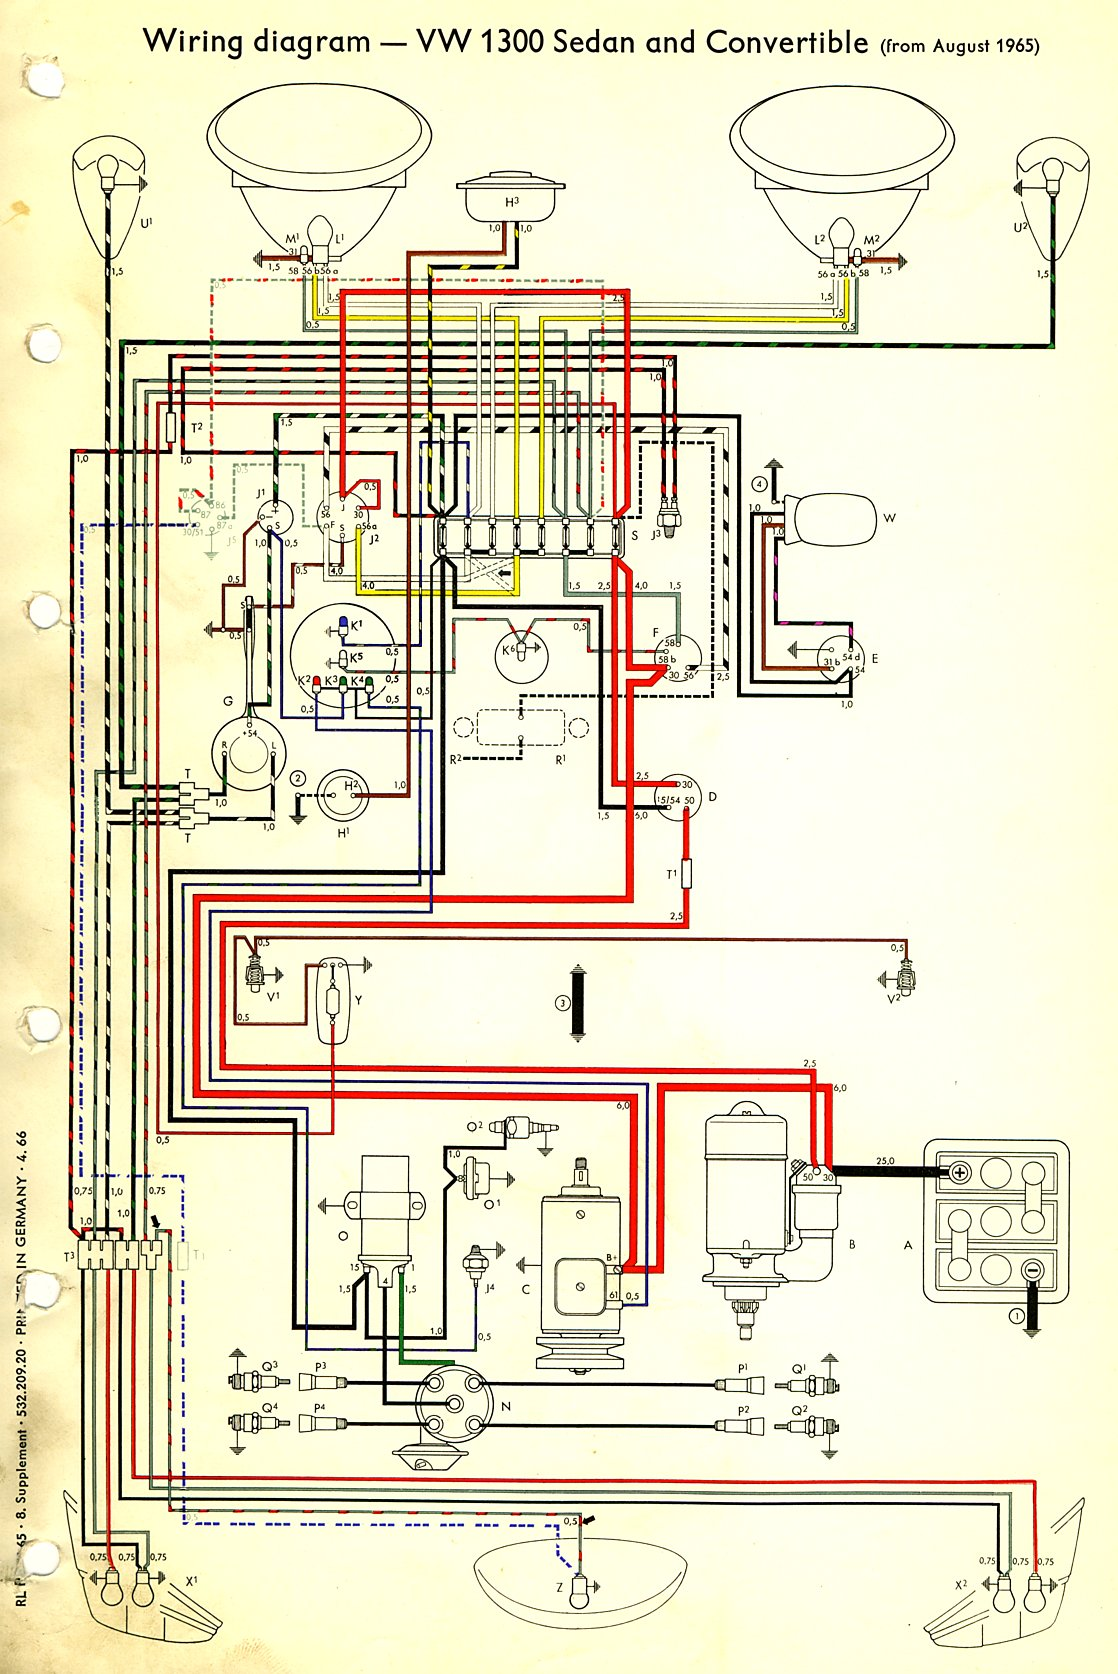 bug_66 1966 beetle wiring diagram thegoldenbug com vw wiring diagrams at gsmx.co